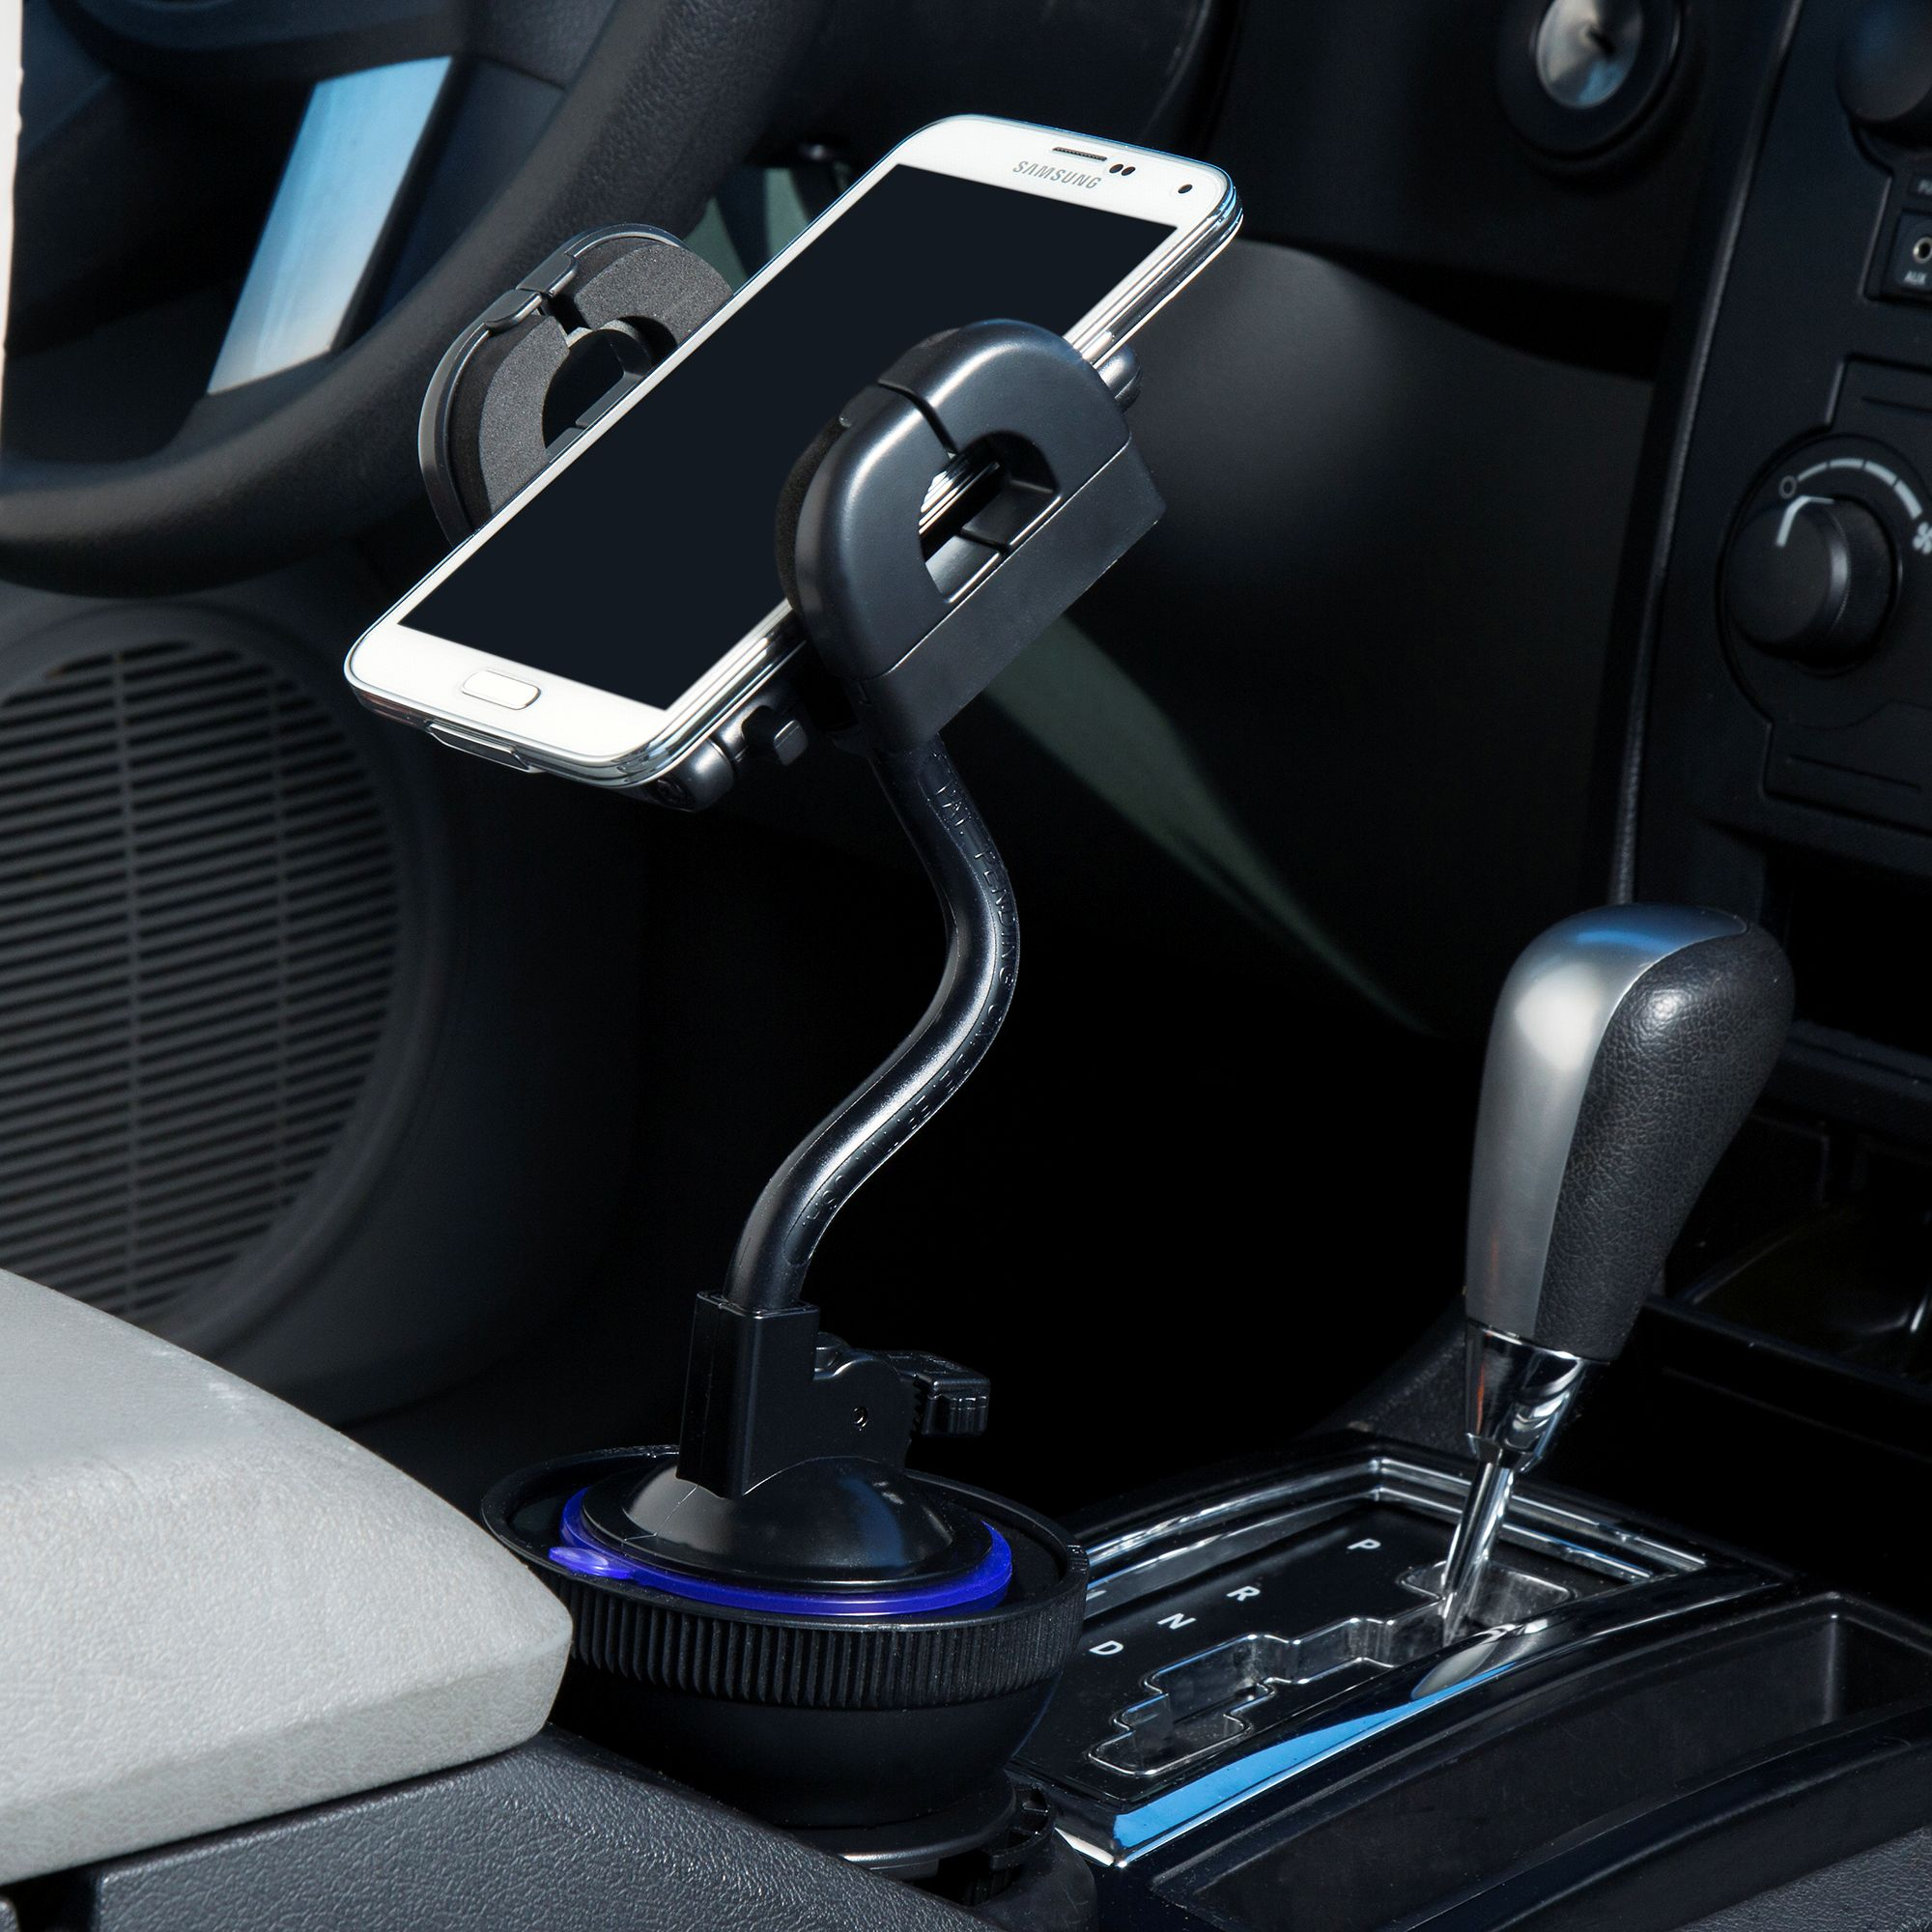 Unique Auto Cupholder and Suction Windshield Dual Purpose Mounting System for TomTom VIA 1500 - Flexible Holder System Includes Two Mount Options